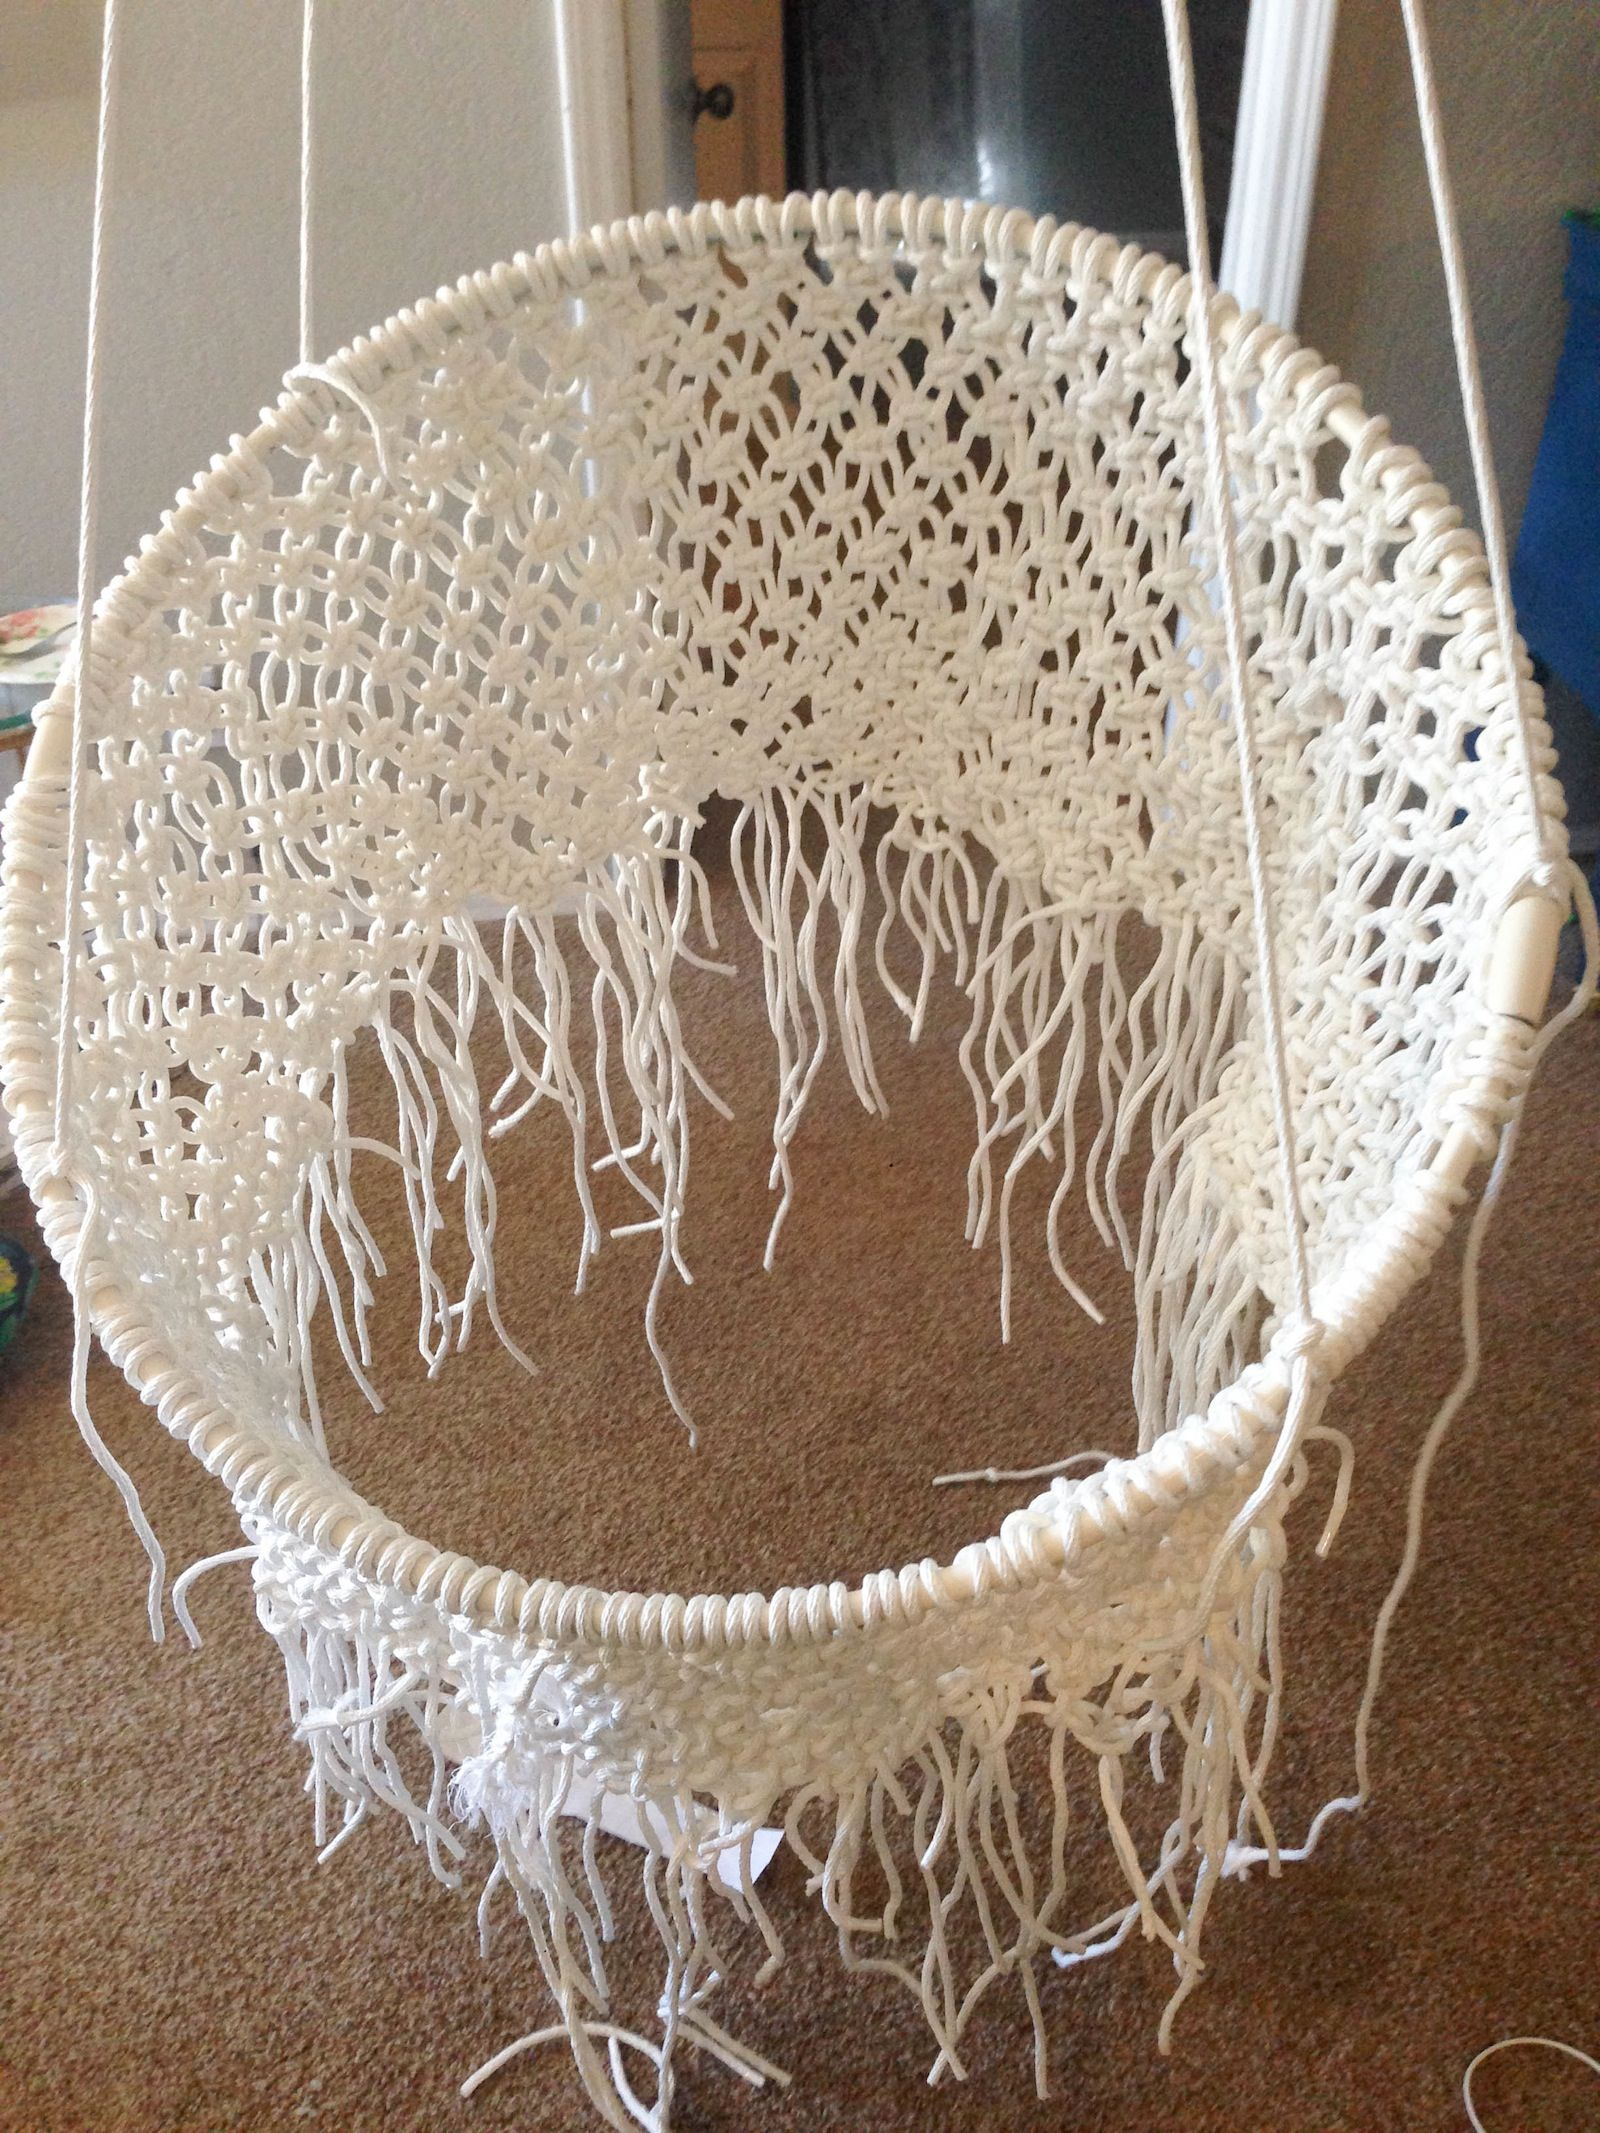 Diy hanging macramé chair ceilings craft and crafty